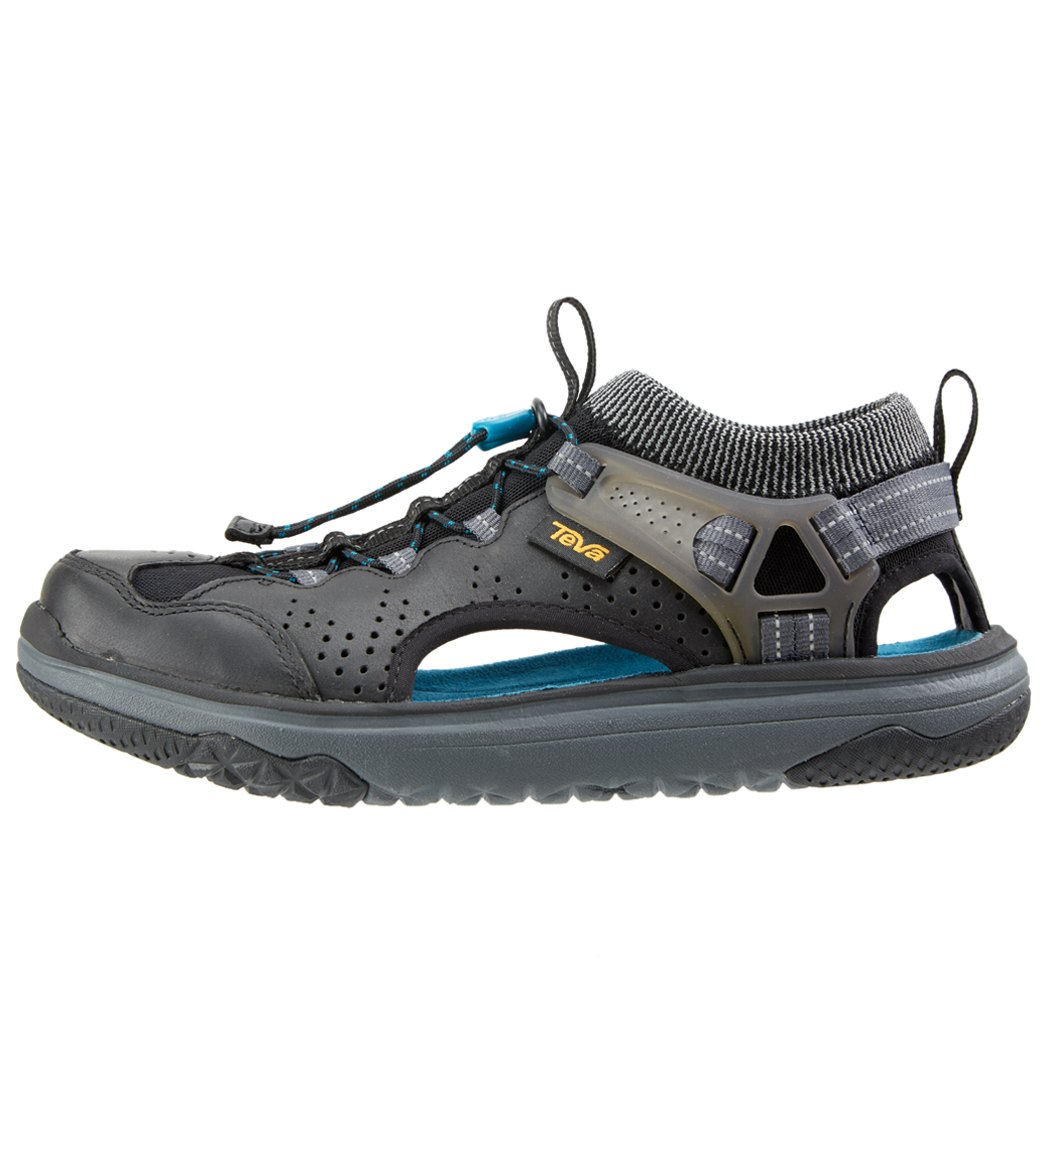 e44b566c47cd Teva Women s Terra Float Travel Lace Water Shoe at SwimOutlet.com ...